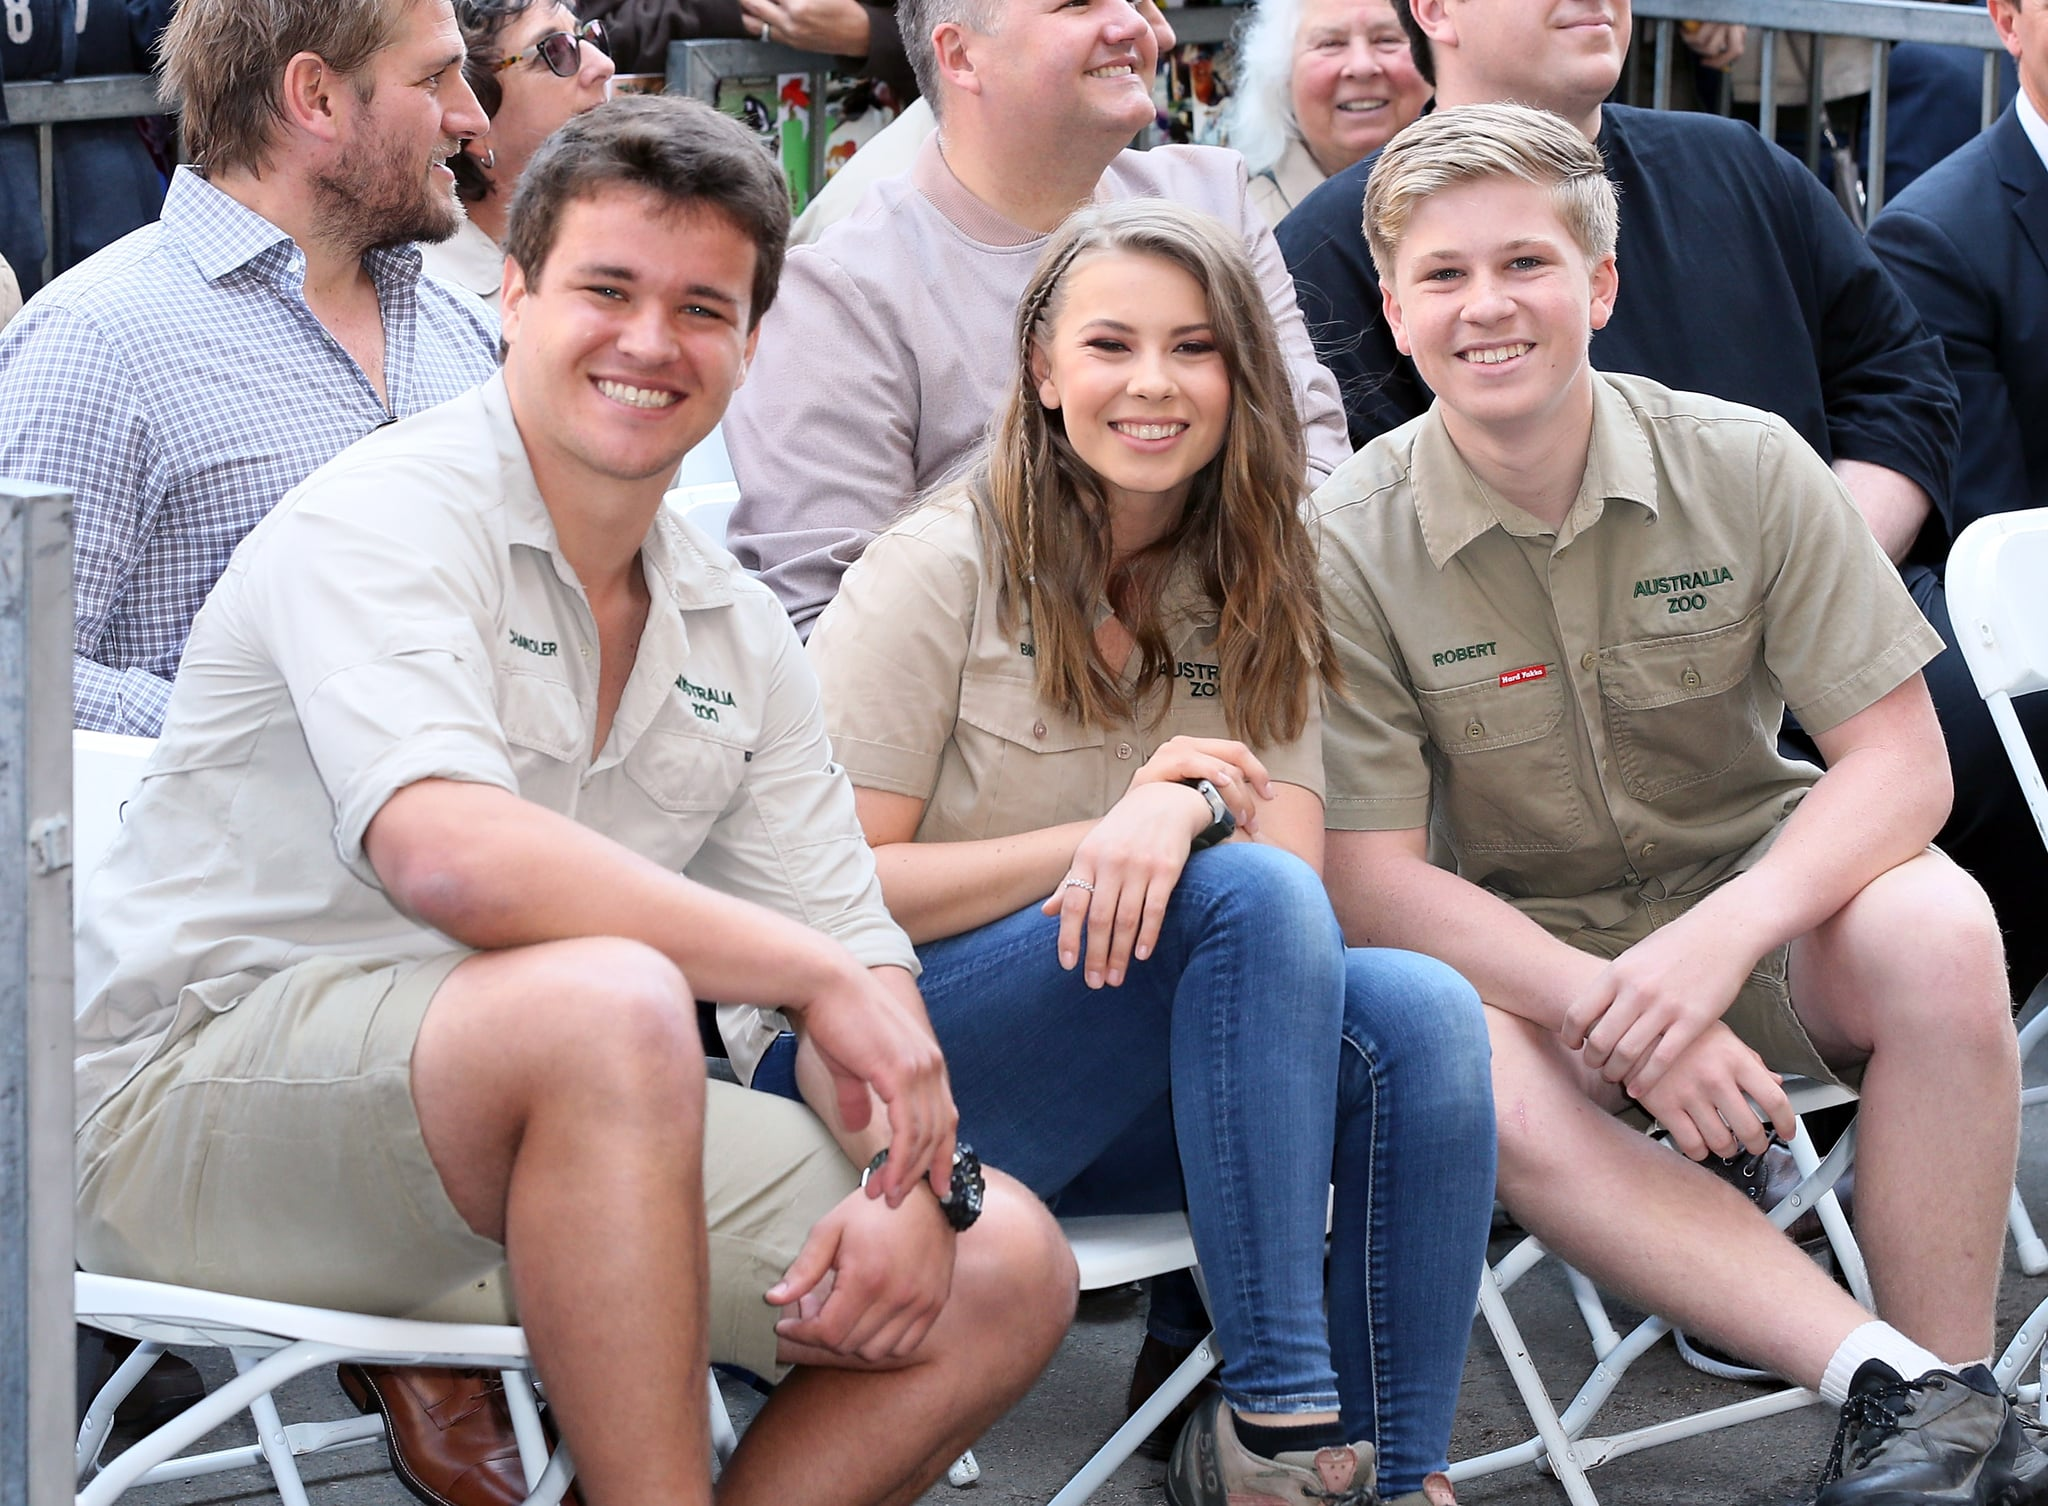 HOLLYWOOD, CA - APRIL 26:  (L-R) Wakeboarder Chandler Powell and conservationists/TV personalities Bindi Irwin and Robert Irwin attend Steve Irwin being honoured posthumously with a Star on the Hollywood Walk of Fame on April 26, 2018 in Hollywood, California.  (Photo by David Livingston/Getty Images)